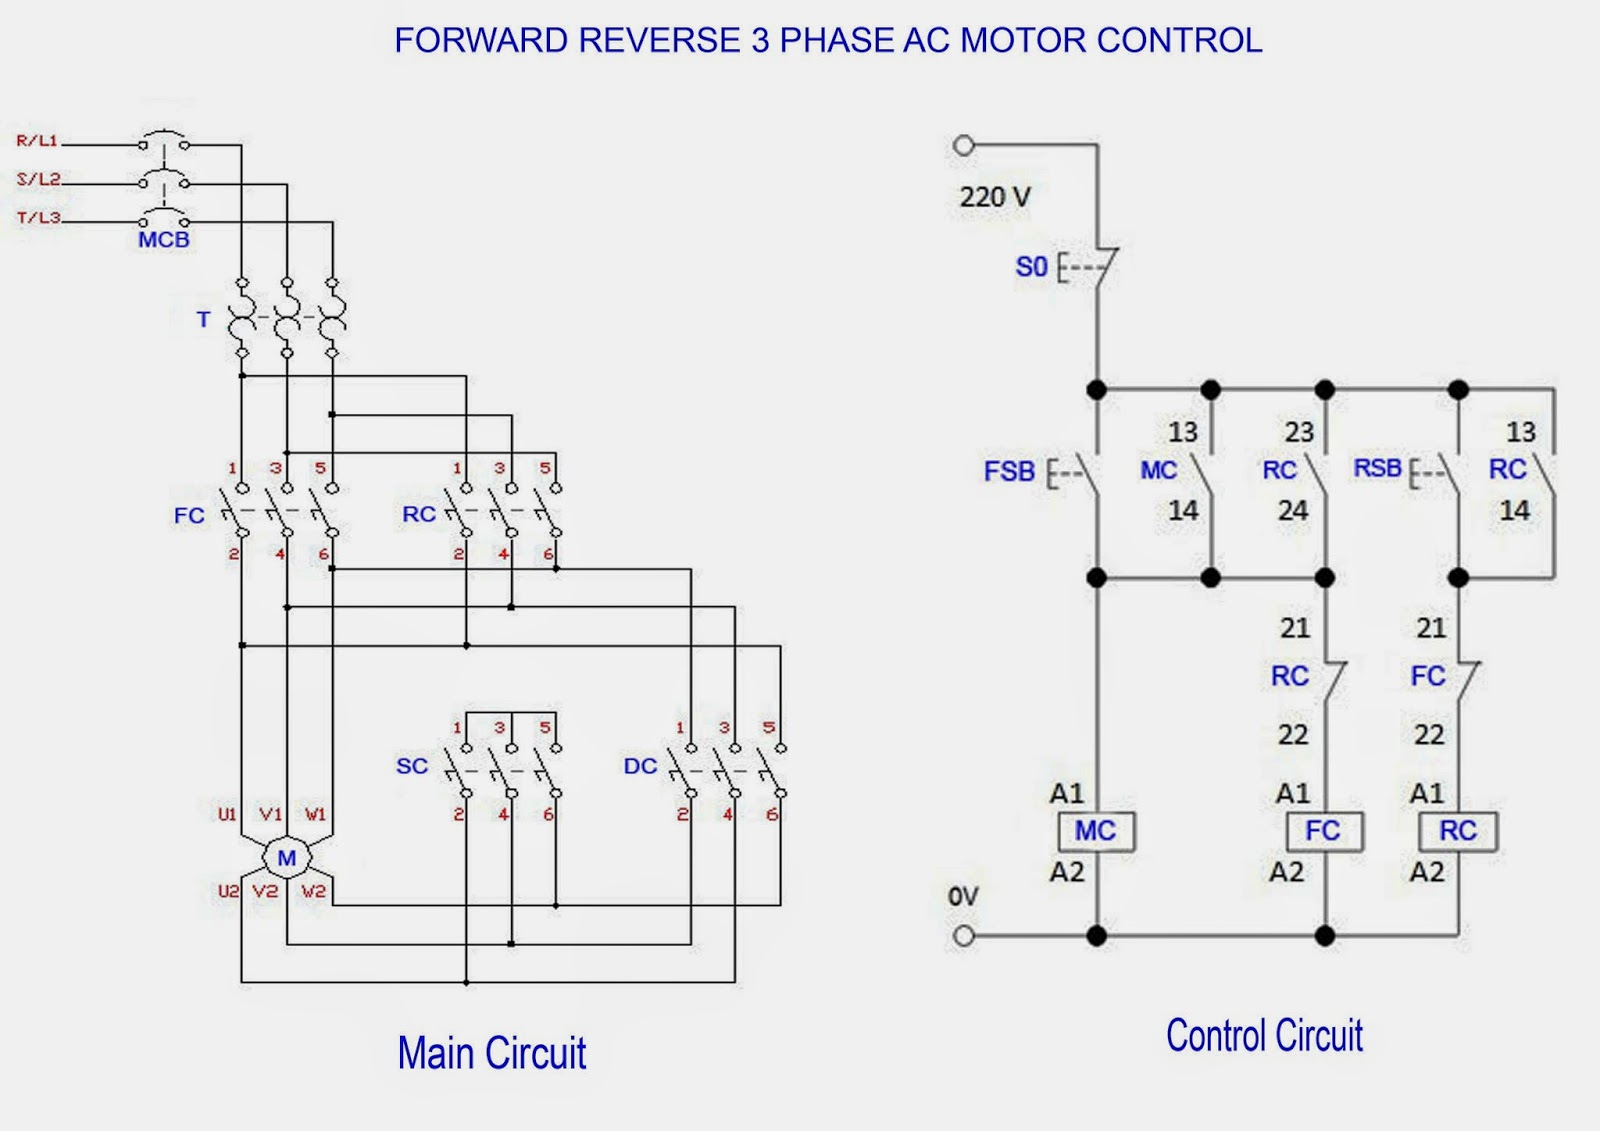 Wiring In Addition Single Phase Forward Reverse Motor Control ... on